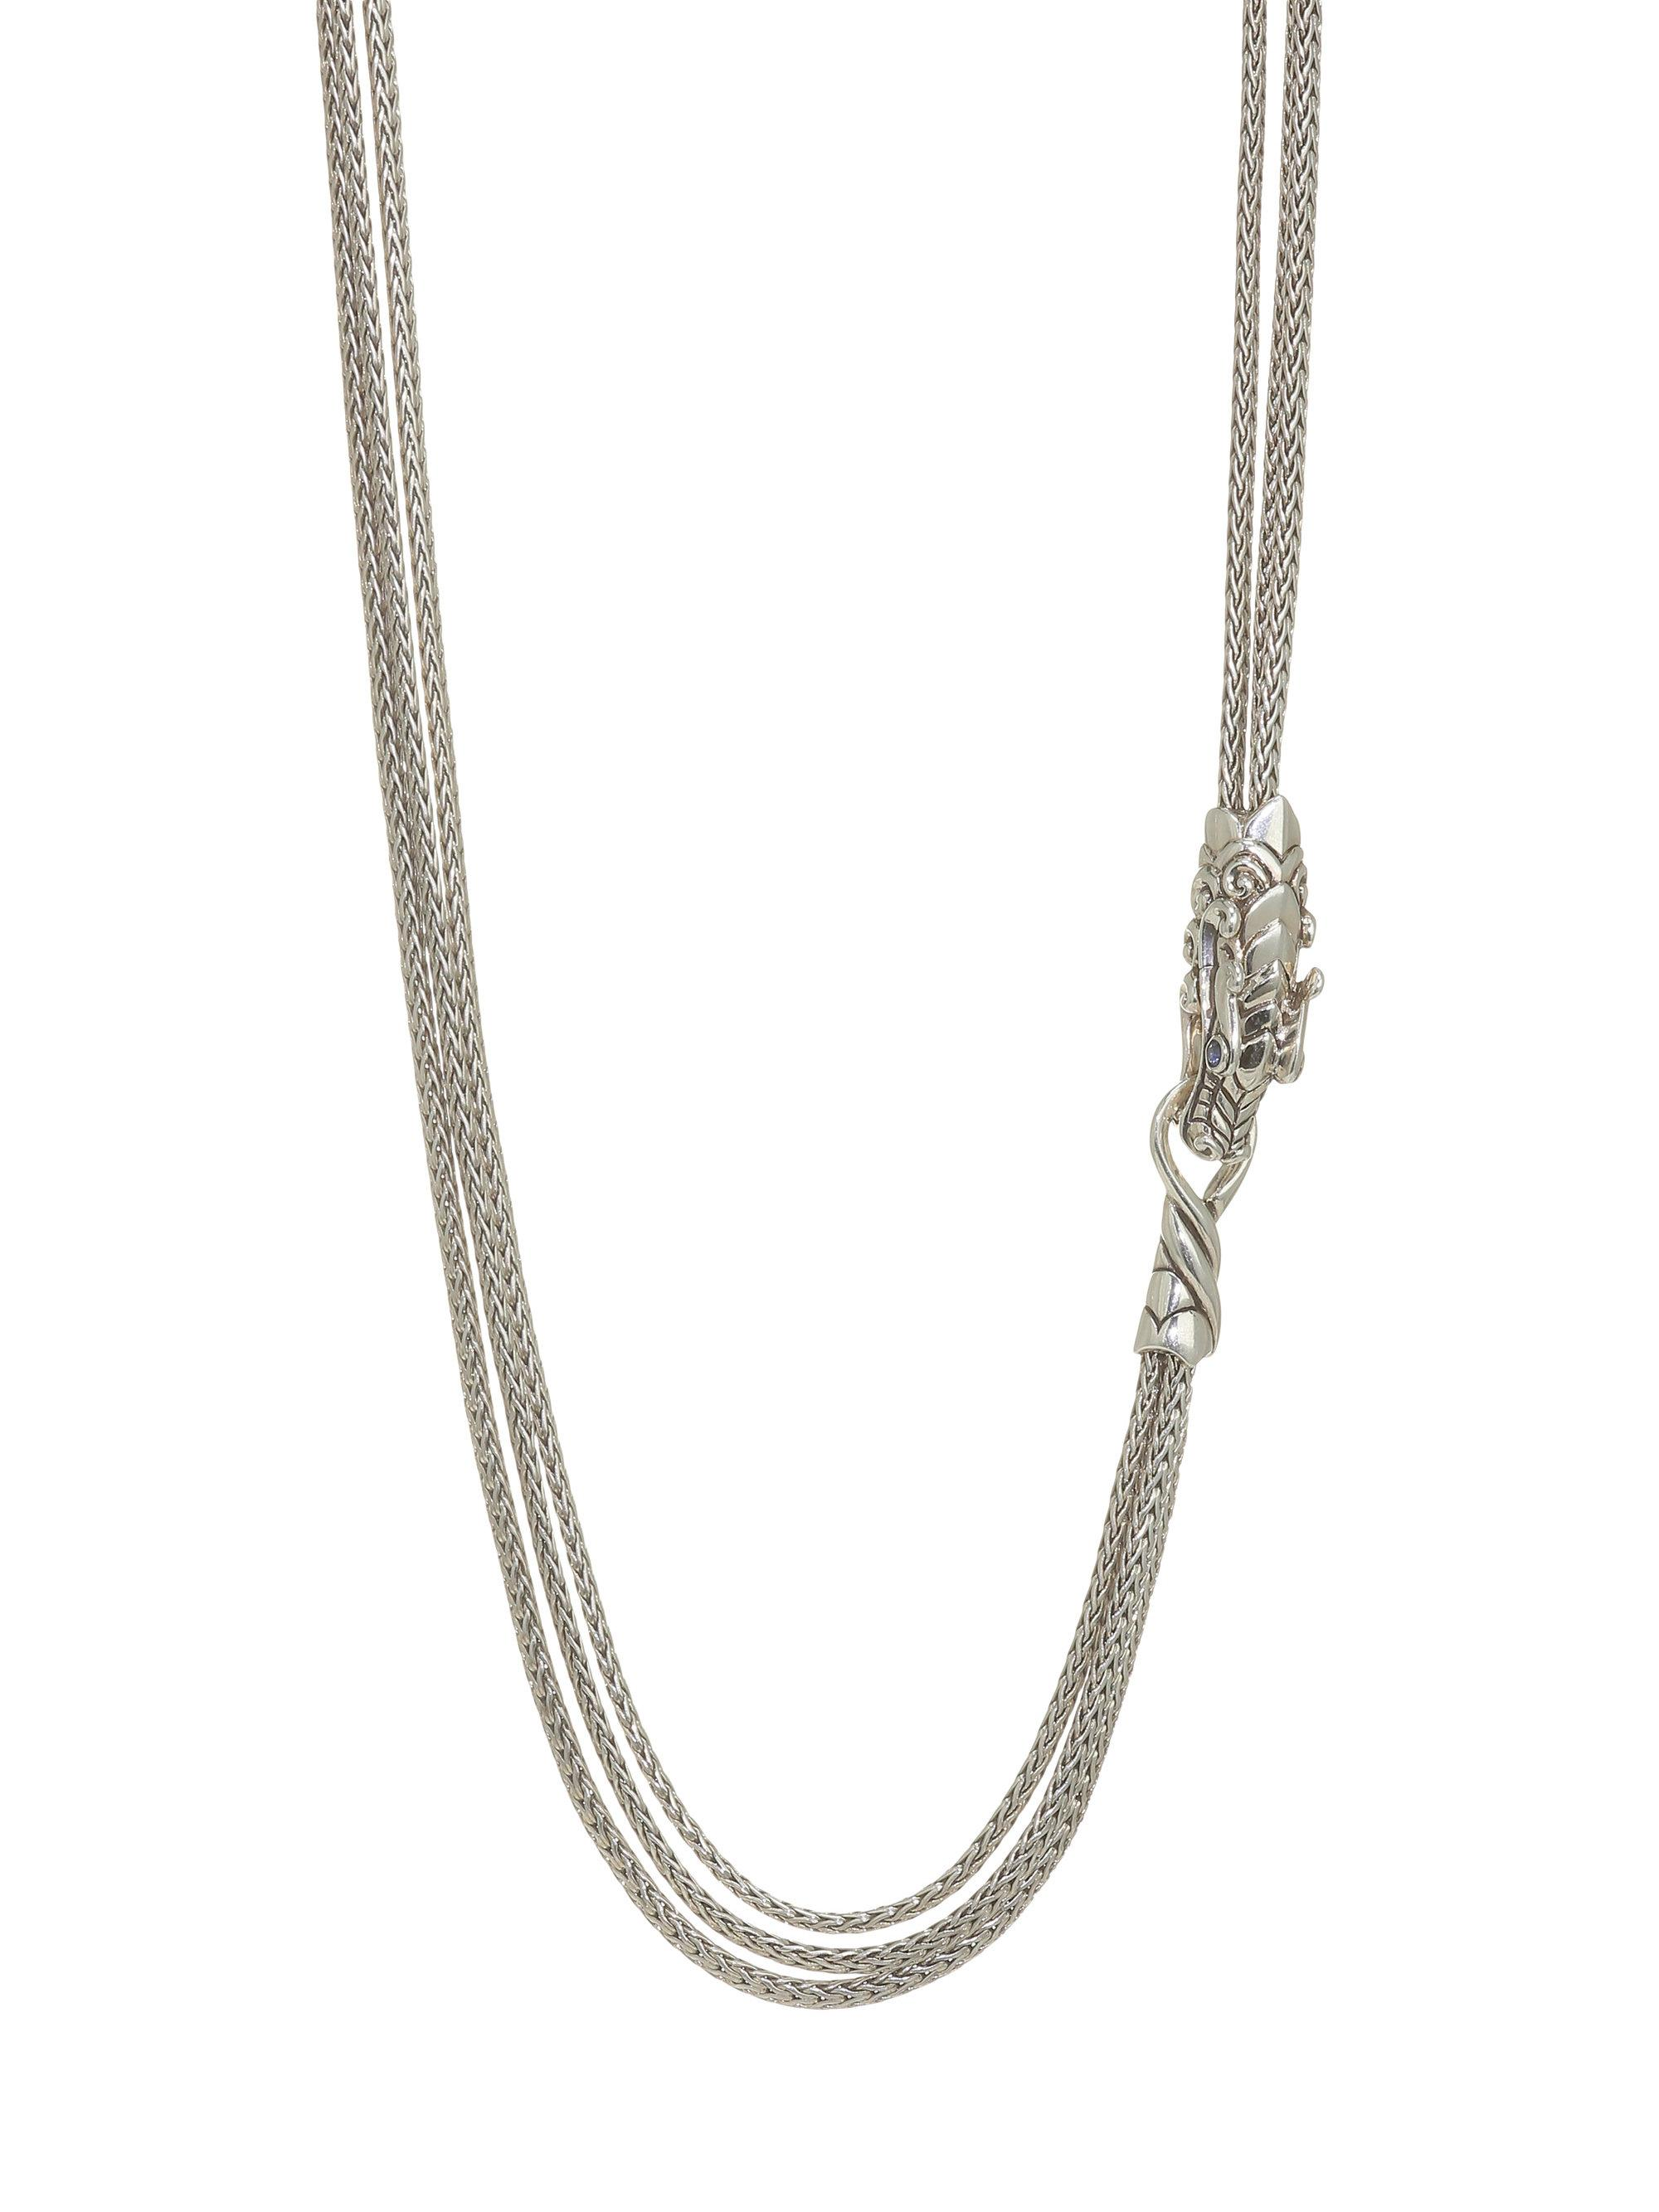 John Hardy Legends Naga Silver Five Row Necklace with Sapphire & Spinel s8xwmOuTYe